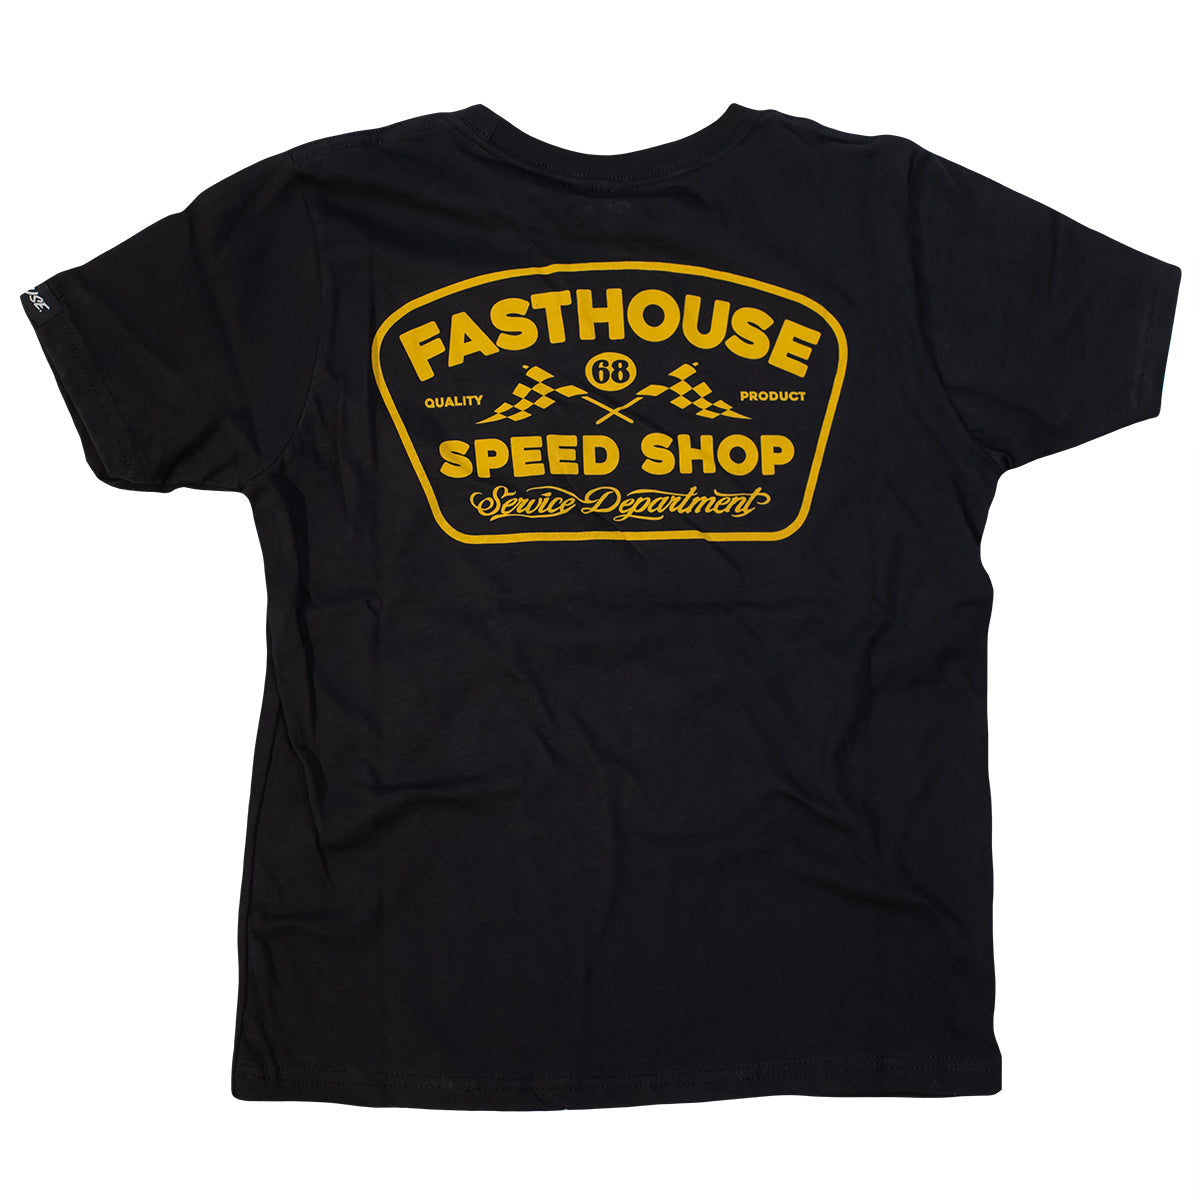 Grease Monkey Youth Tee - Black